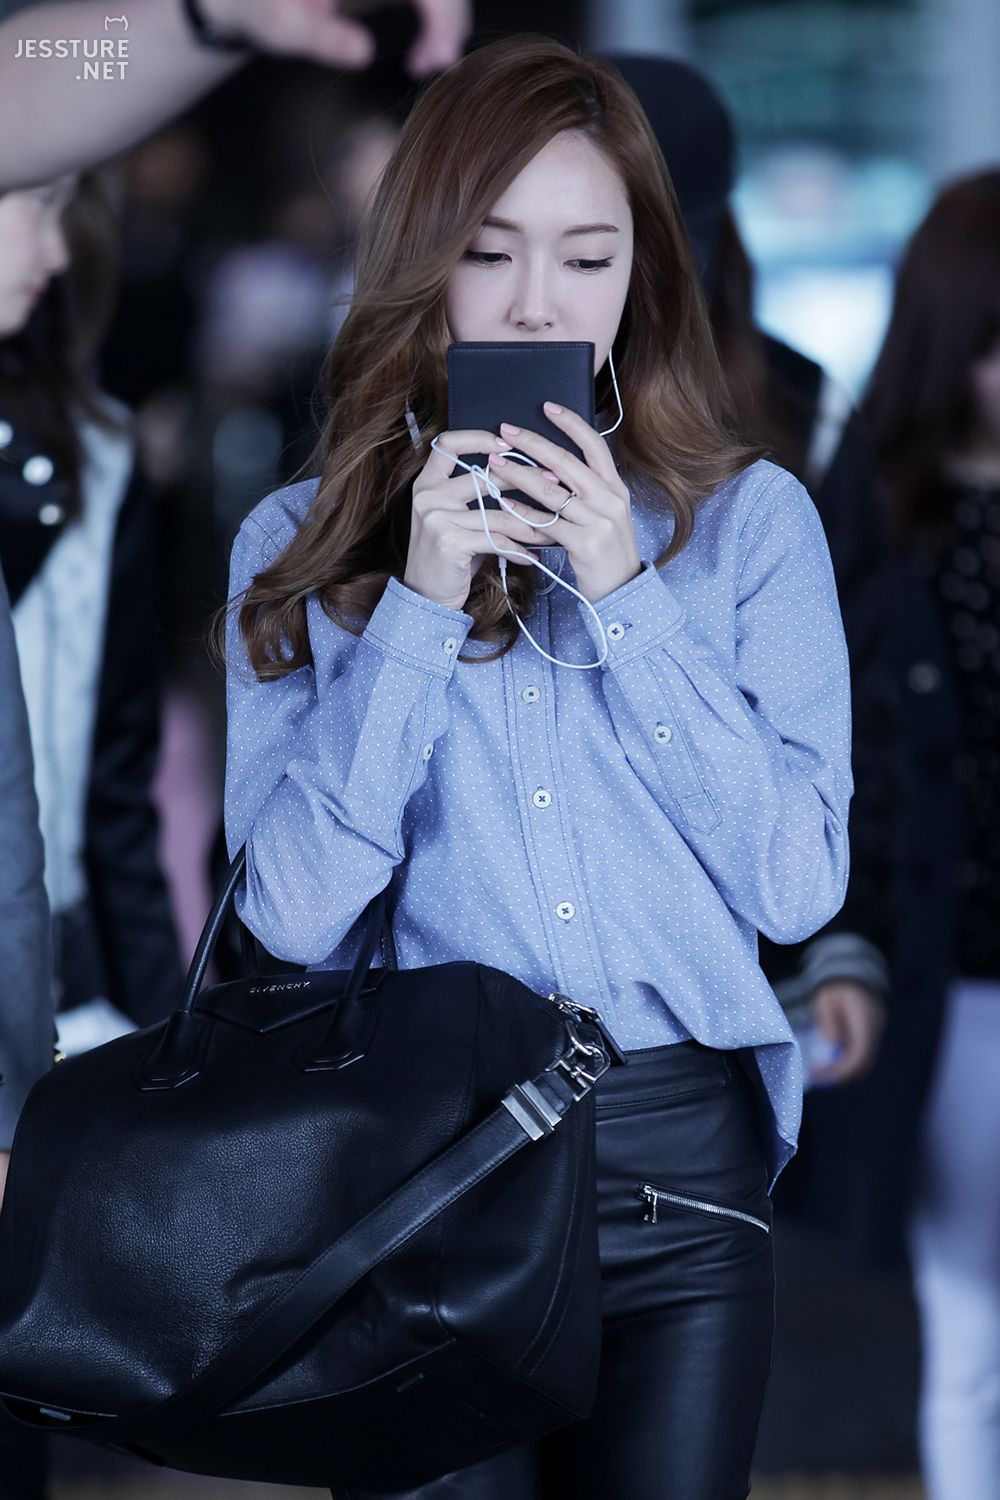 snsd jessica airport fashion 140428 2014 the girls on